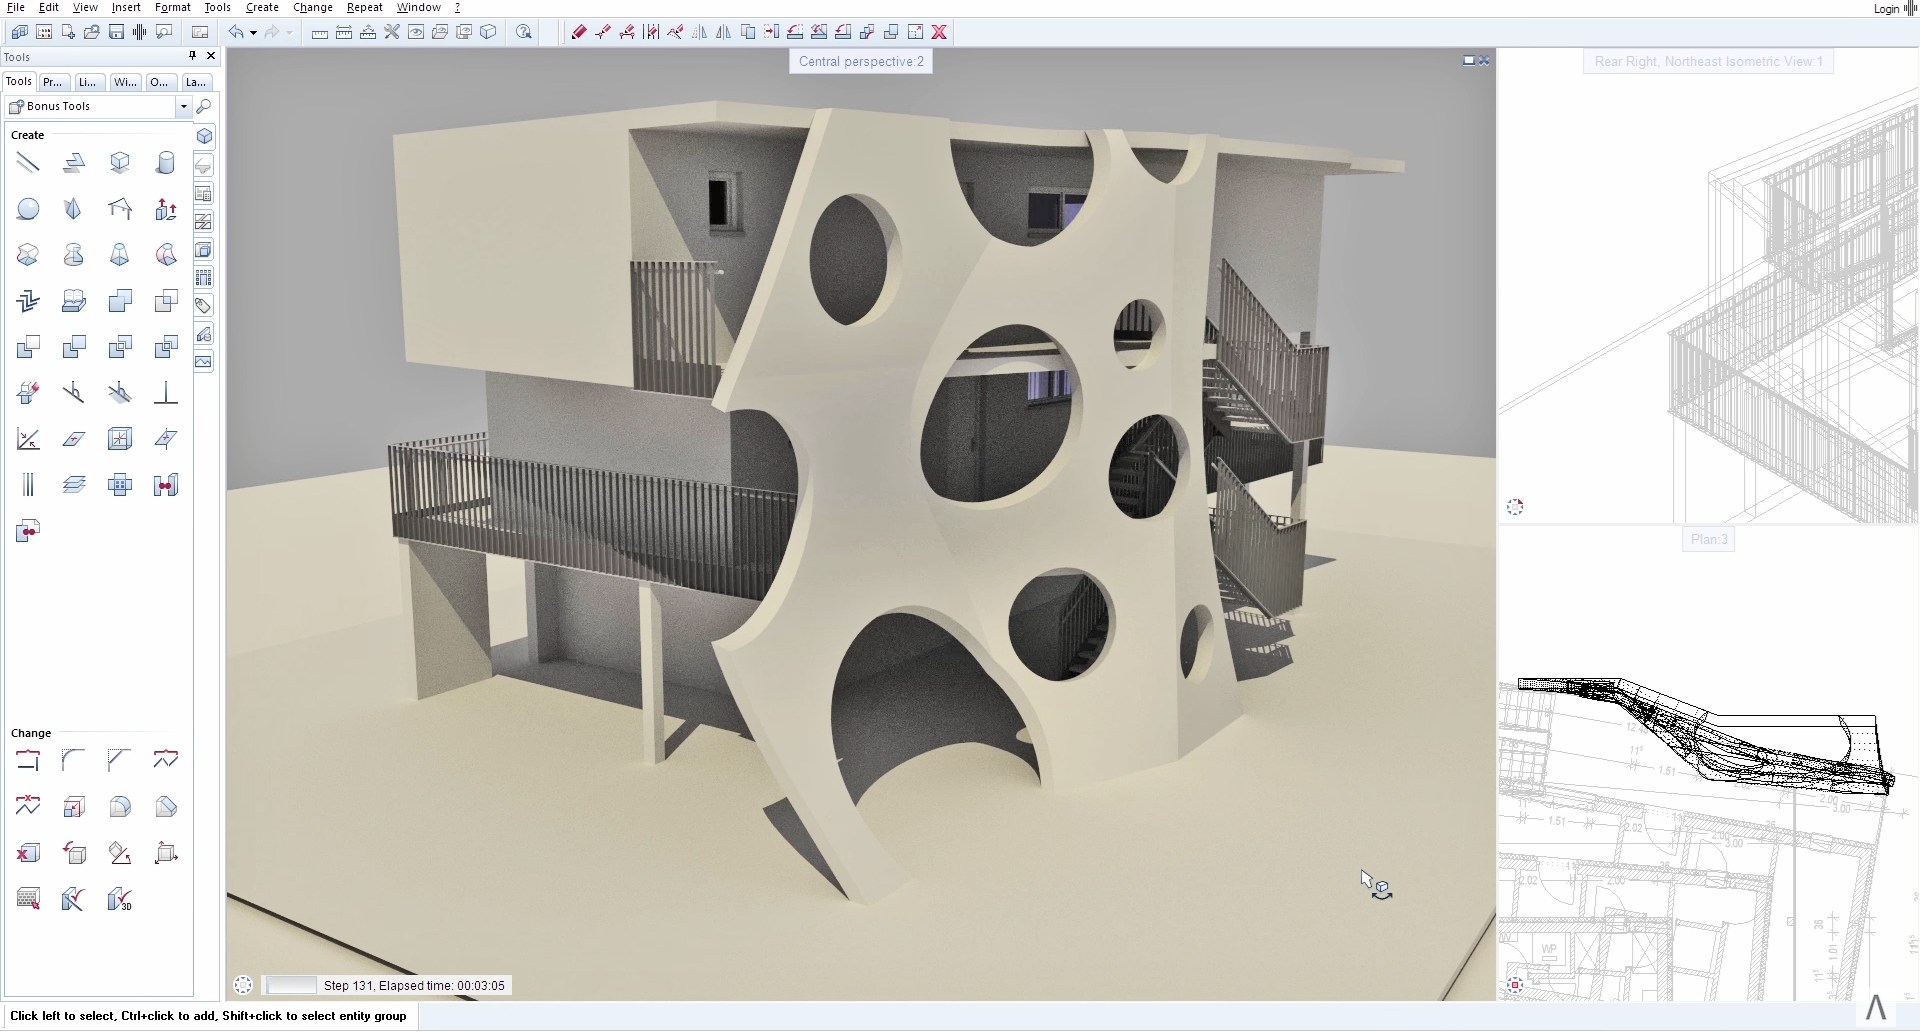 Logiciel int gr cao calcul allplan architecture 2017 by for Architecture 2017